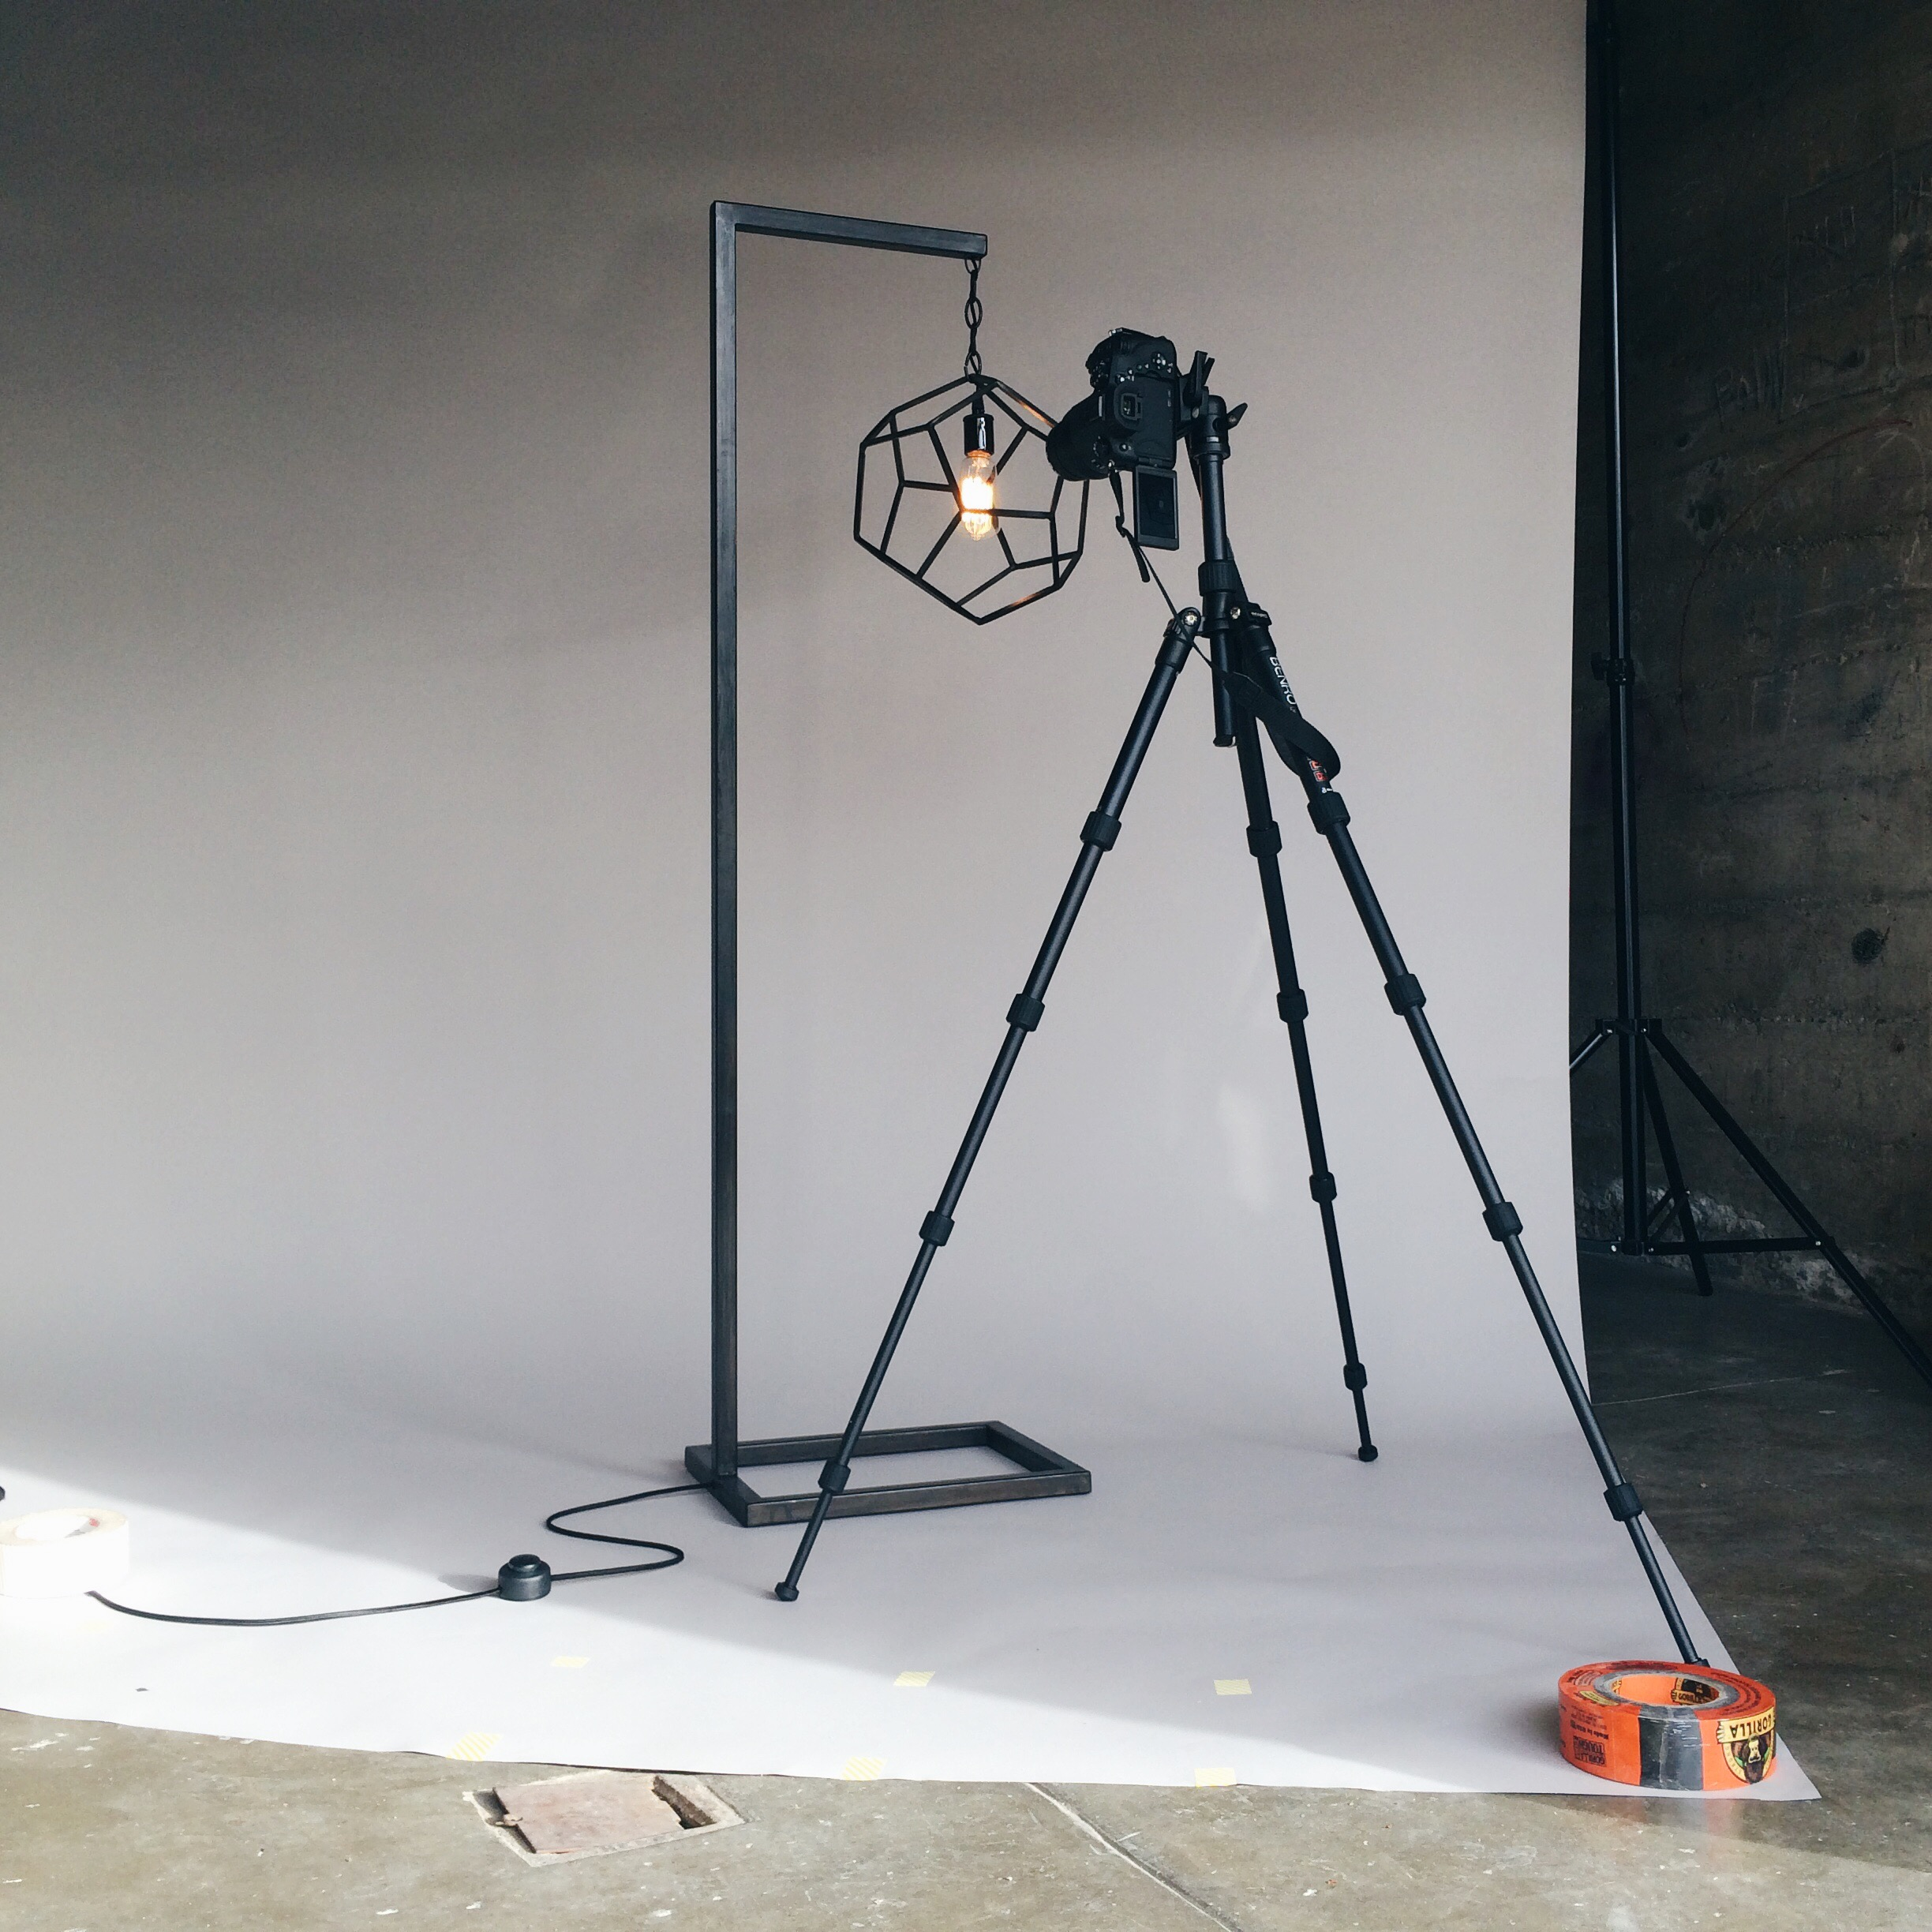 I turned our garage into a photo studio.